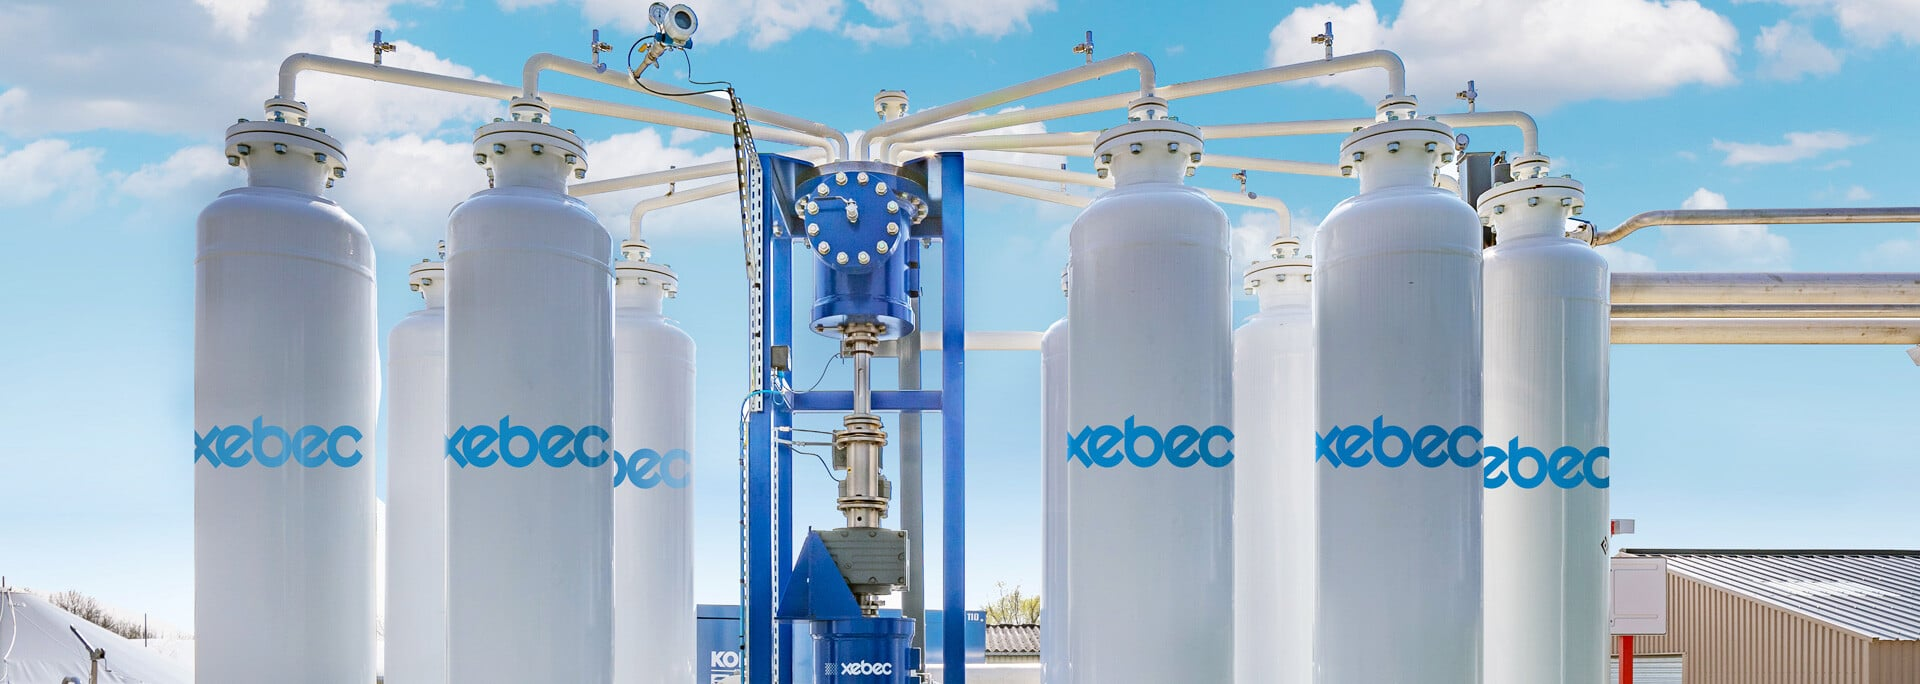 Cleantech Xebec Hires V2